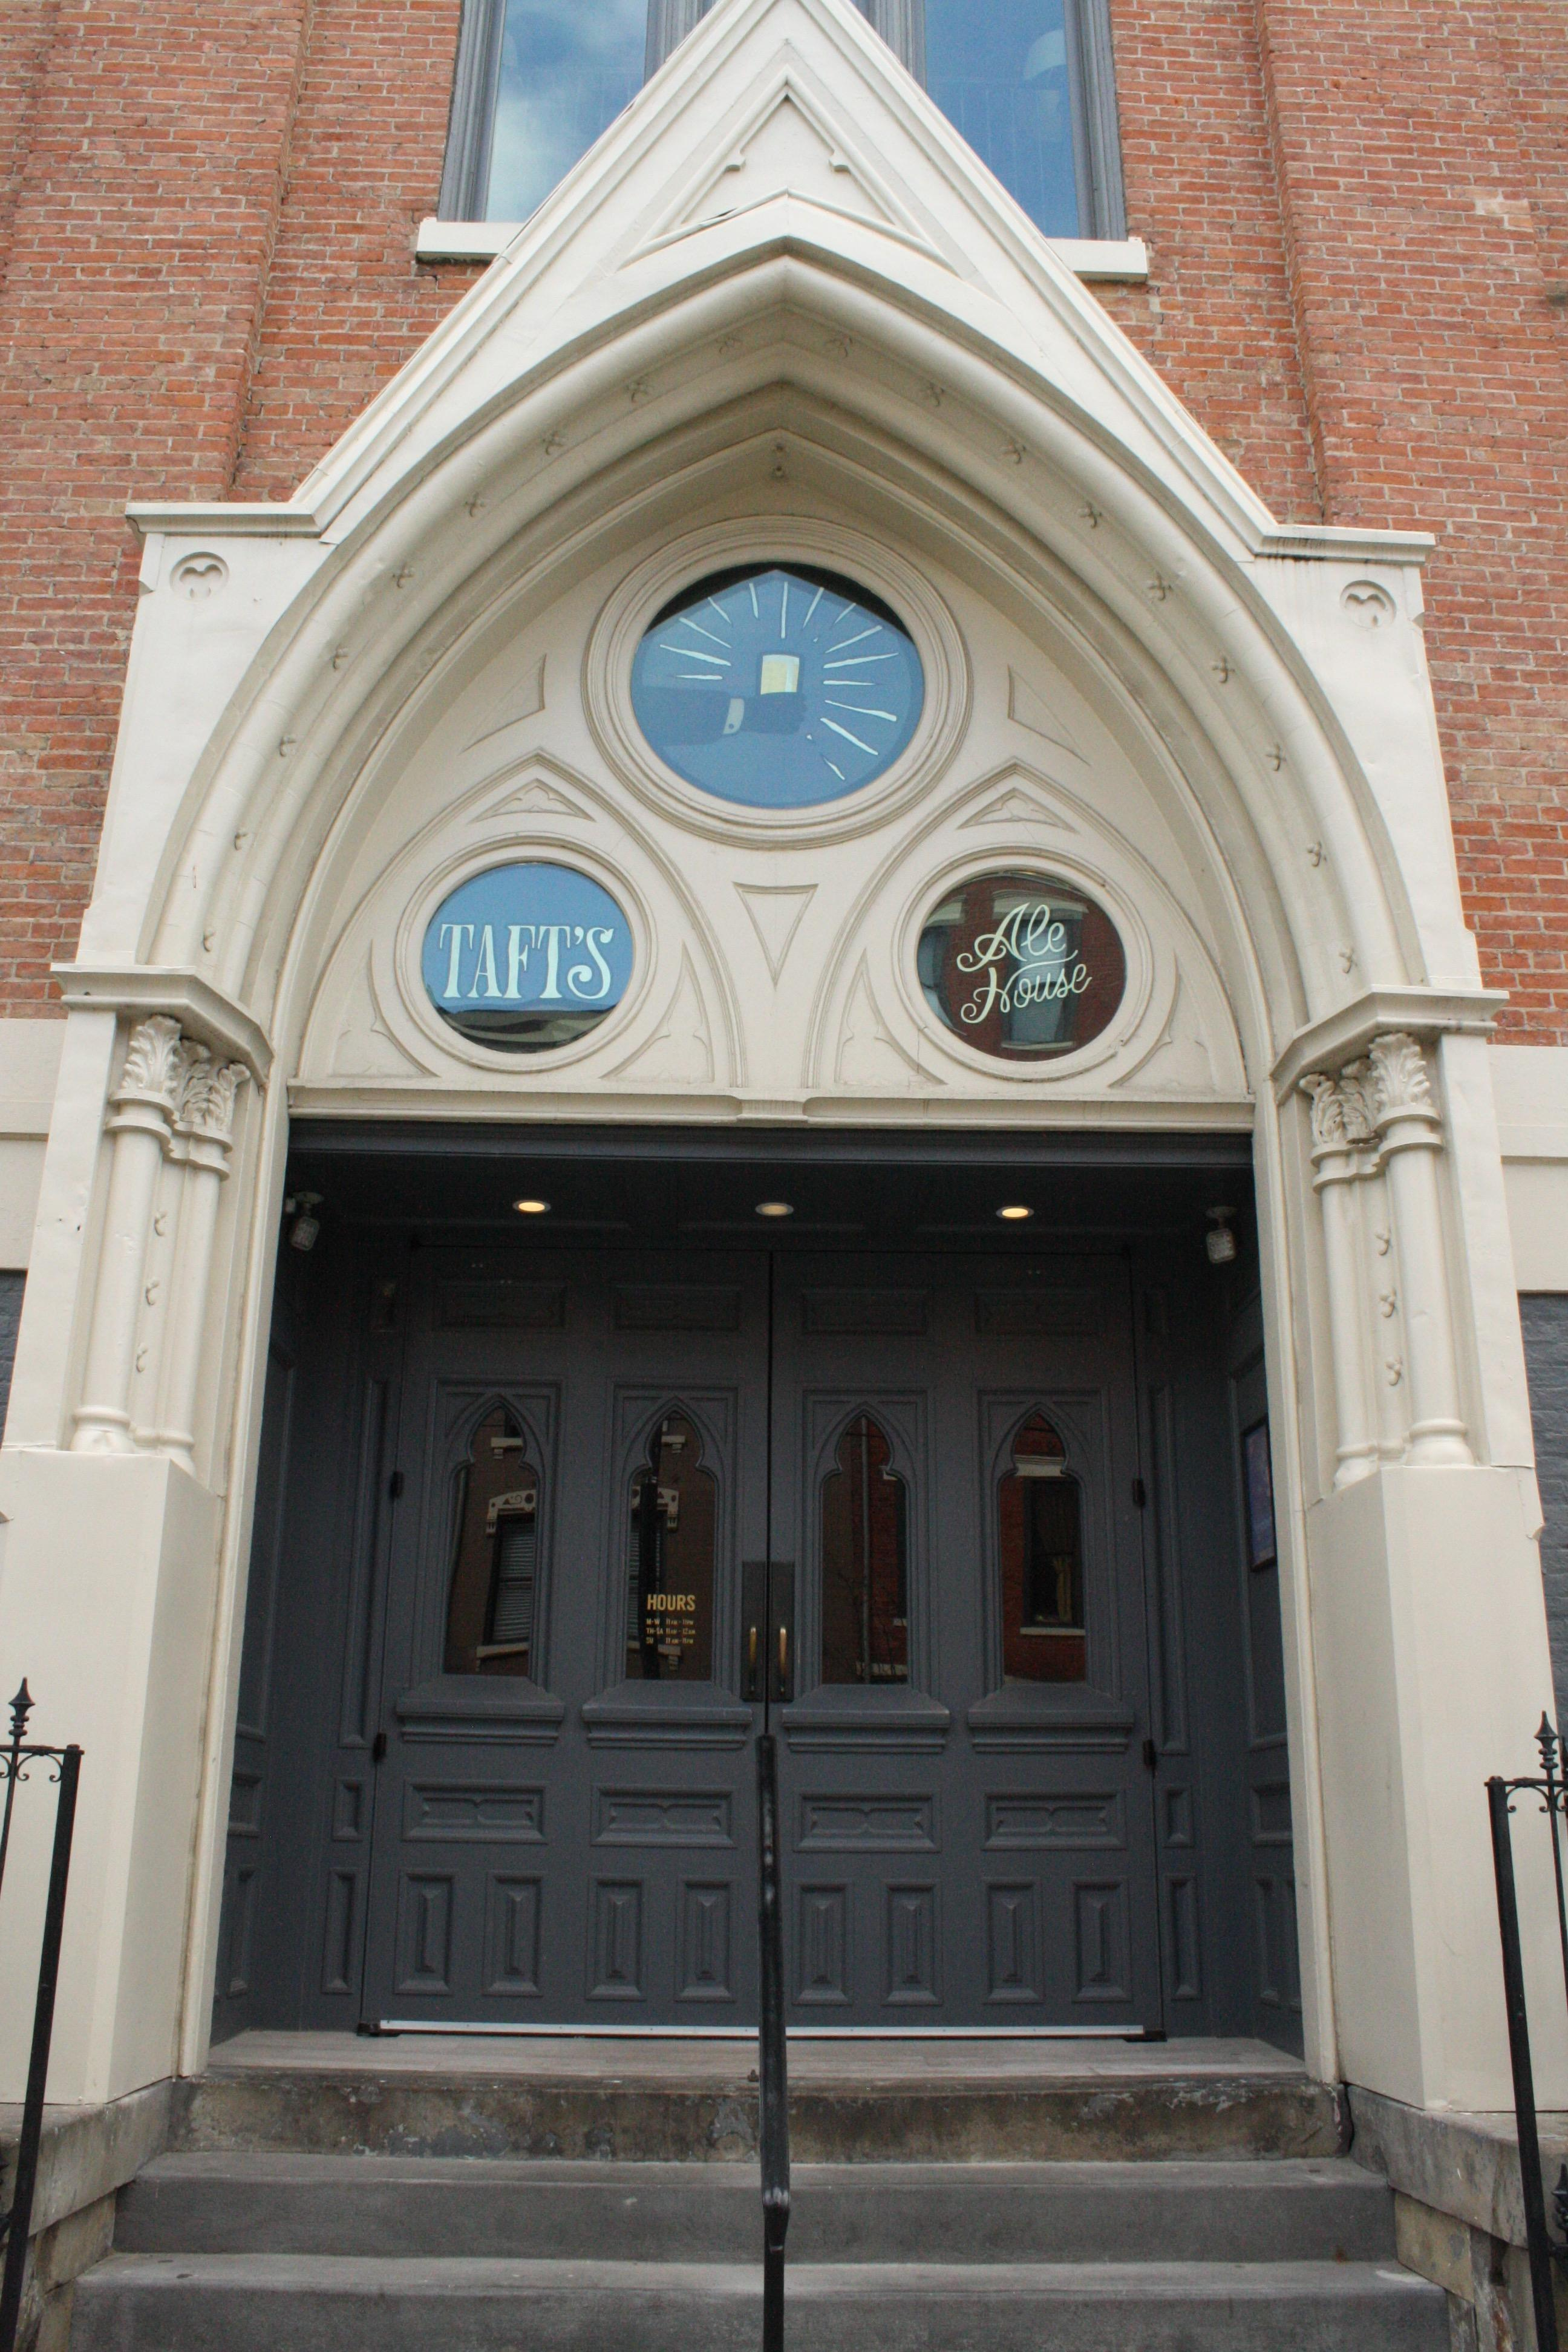 PLACE: Taft's Ale House / NEIGHBORHOOD: Over-the-Rhine / USE: Bar and restaurant / FORMERLY: St. Paul's Evangelical Church / Image: Delaney French // Published: 4.12.17